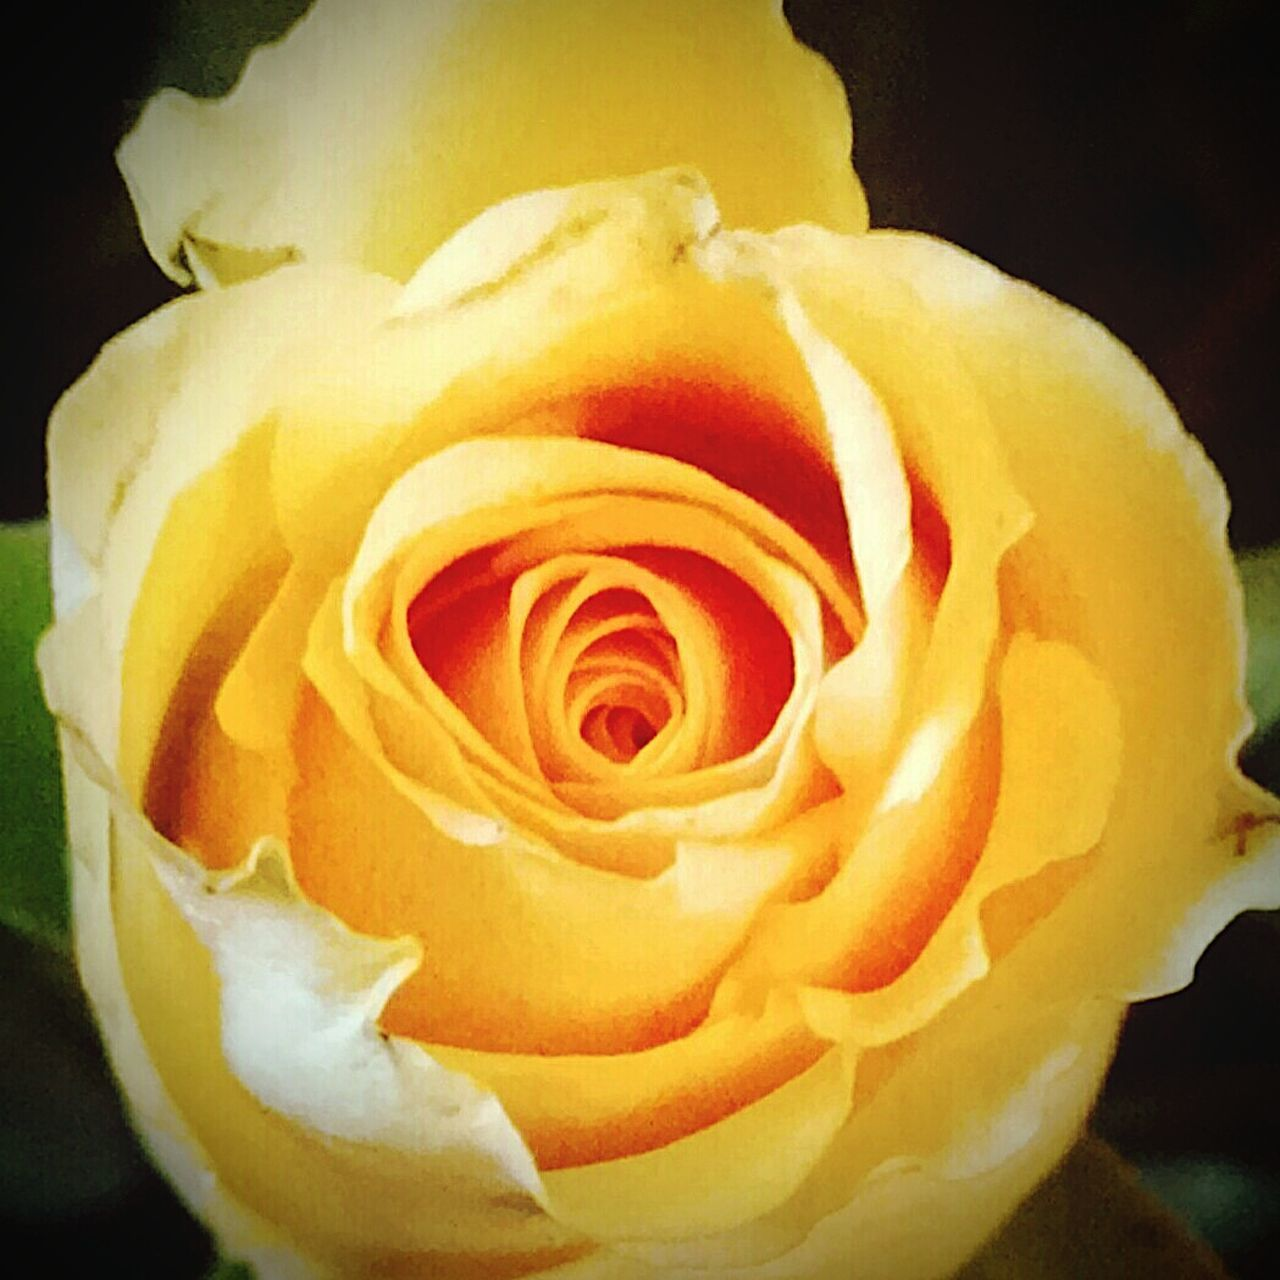 Flower Collection Flowers,Plants & Garden Yellow Rose Early Bloom Weekend ♥